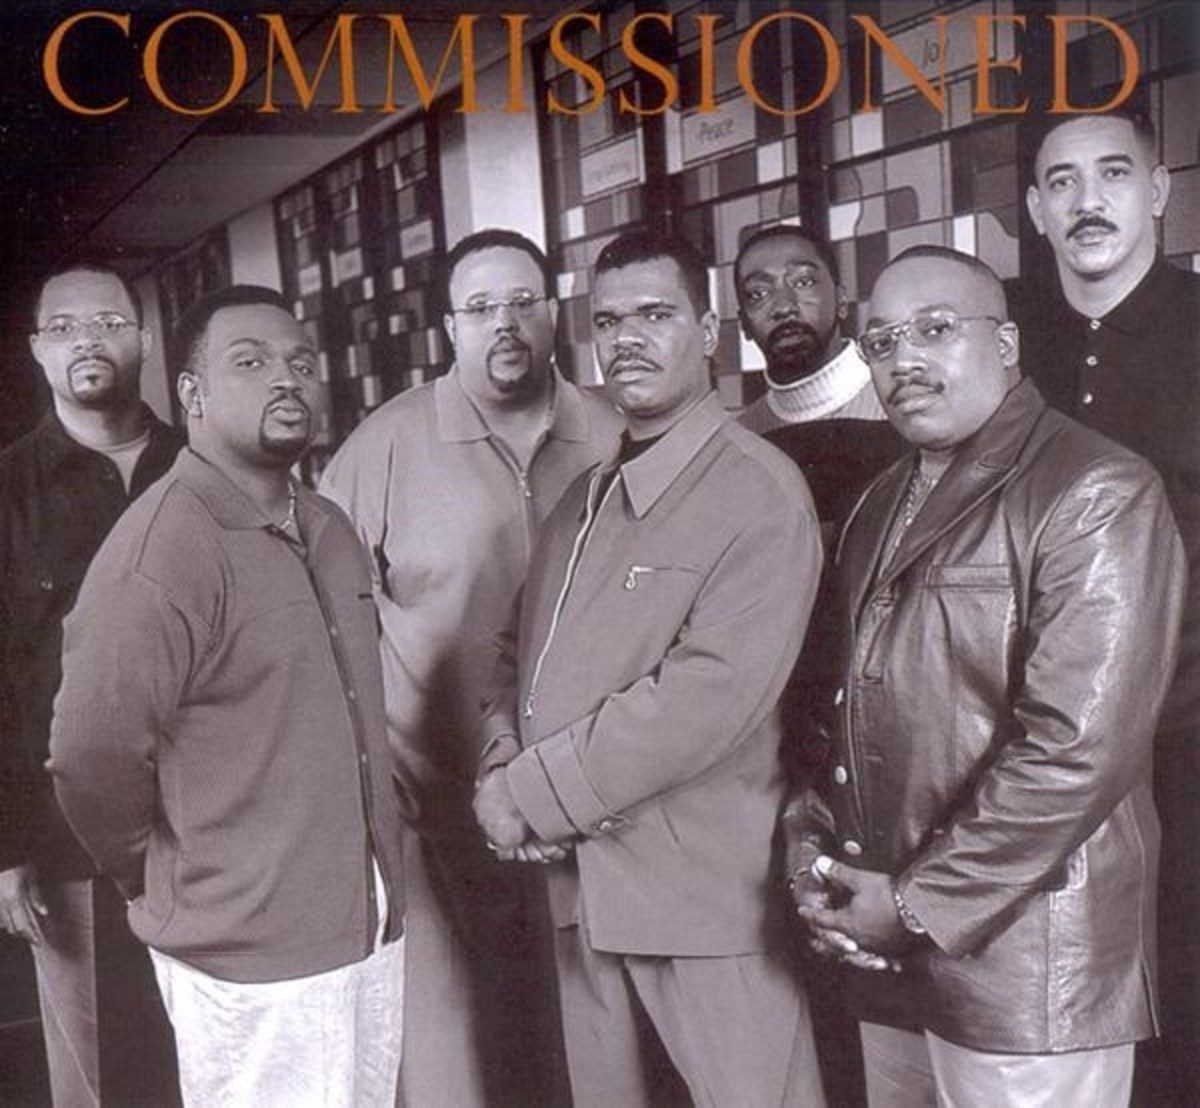 Commissioned ... a Mighty Band, a Mighty Groove